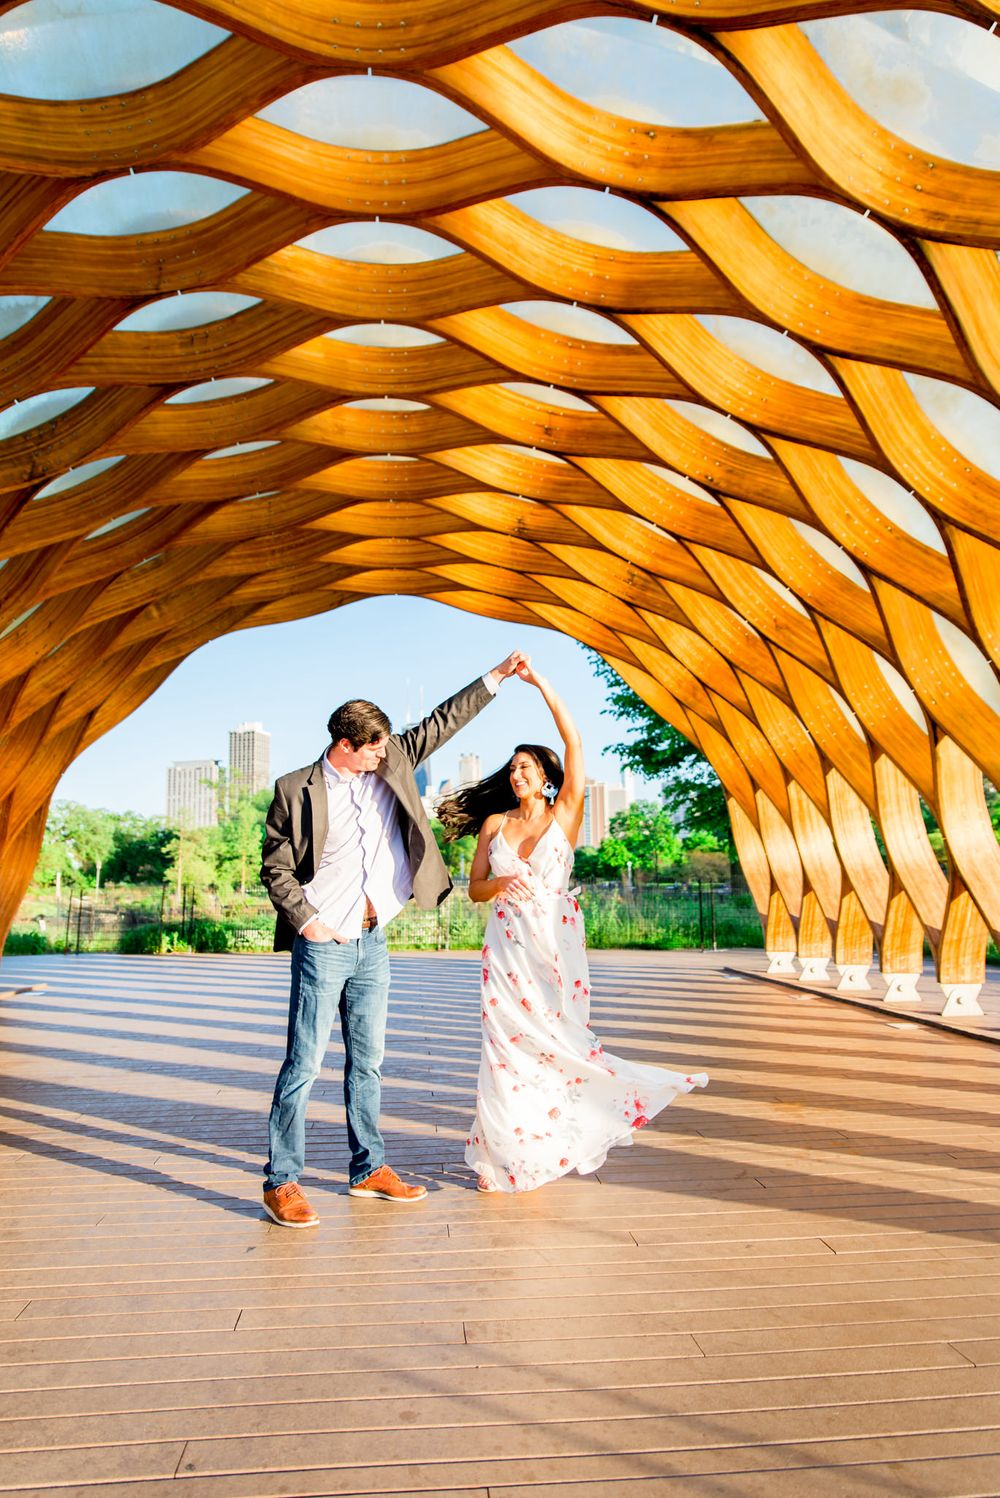 man in suit twirling woman under Honeycomb at Lincoln Park for engagement pictures in Chicago at sunset